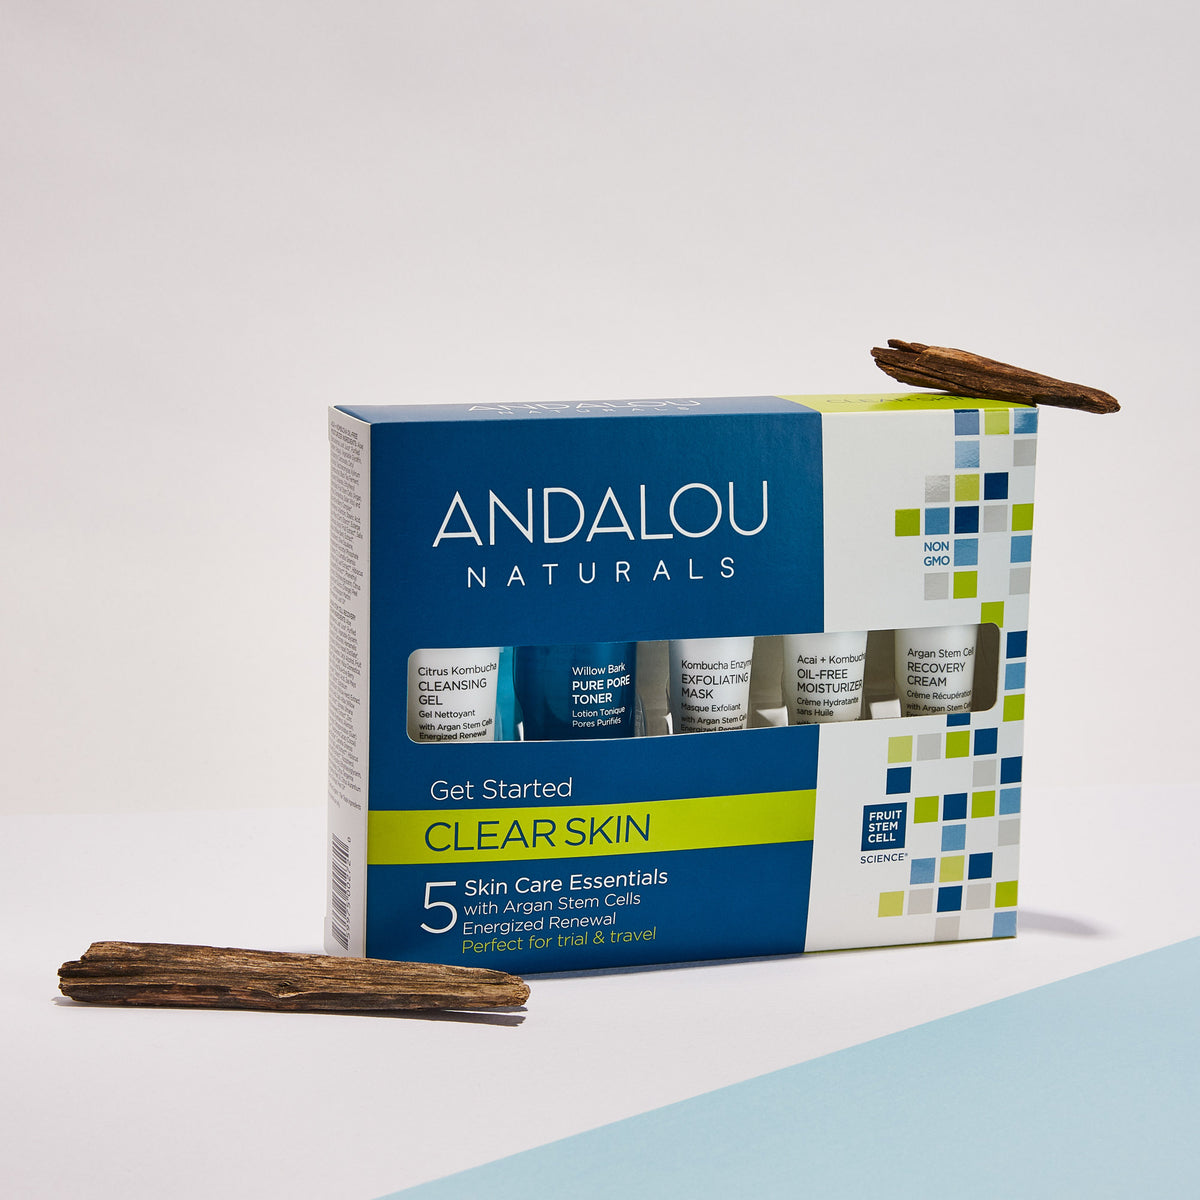 Andalou Naturals Clear Skin Get Started Kit packaging with aloe vera